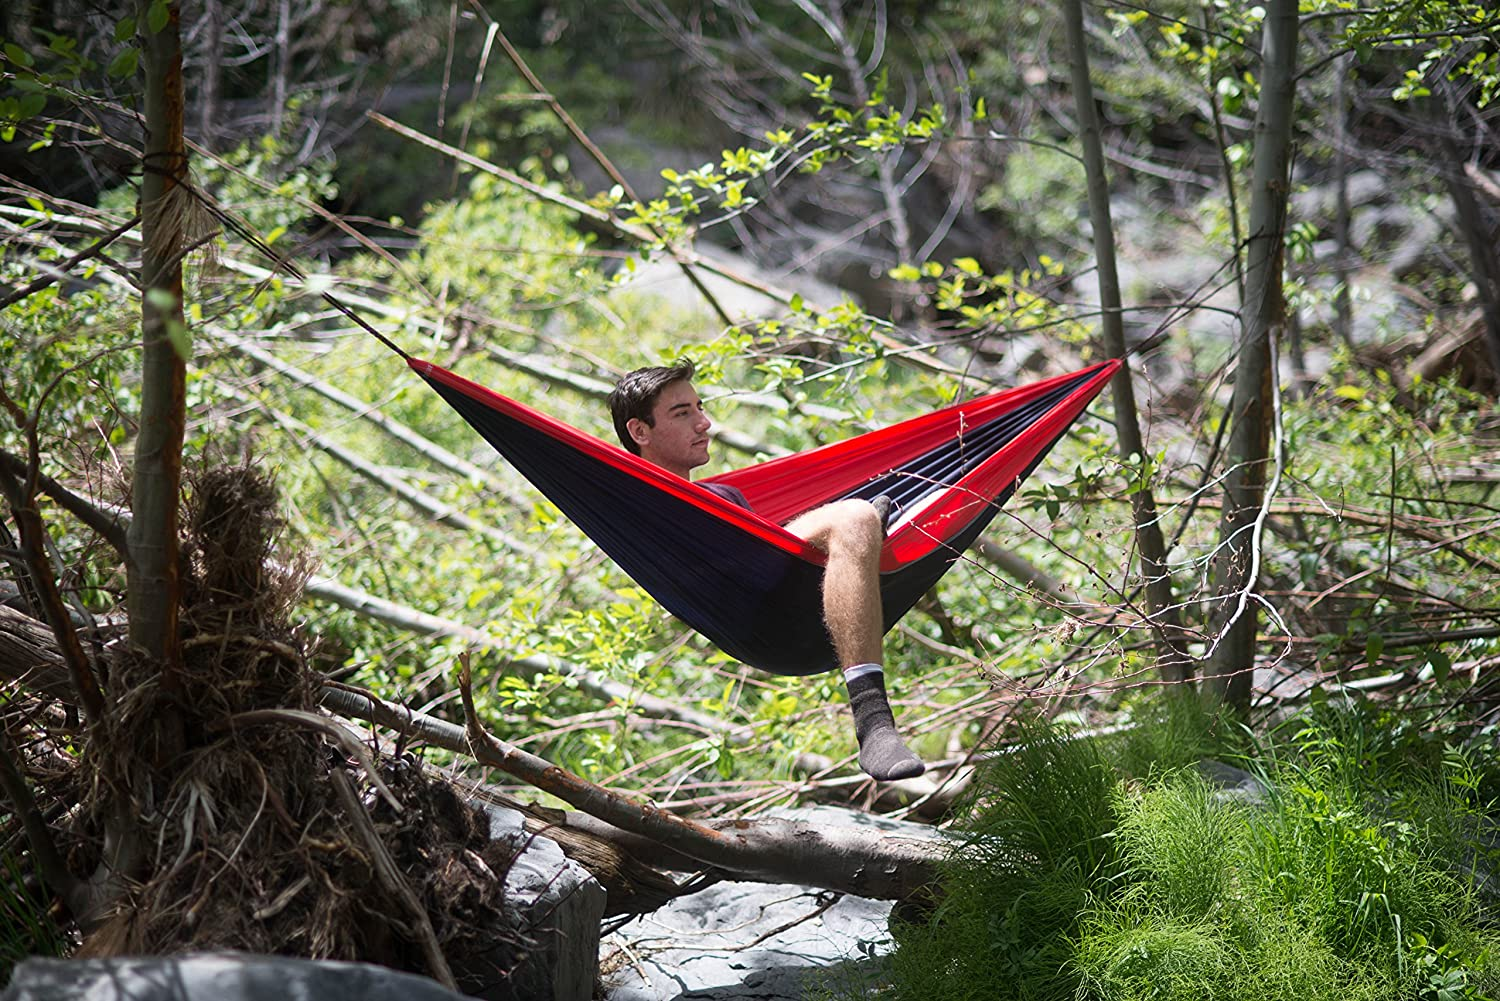 100 Rope per Side Included Backpacking Quality You Can Trust Kayaking /& Travel Portable Hammock Ideal For Camping Hammock Bliss Single